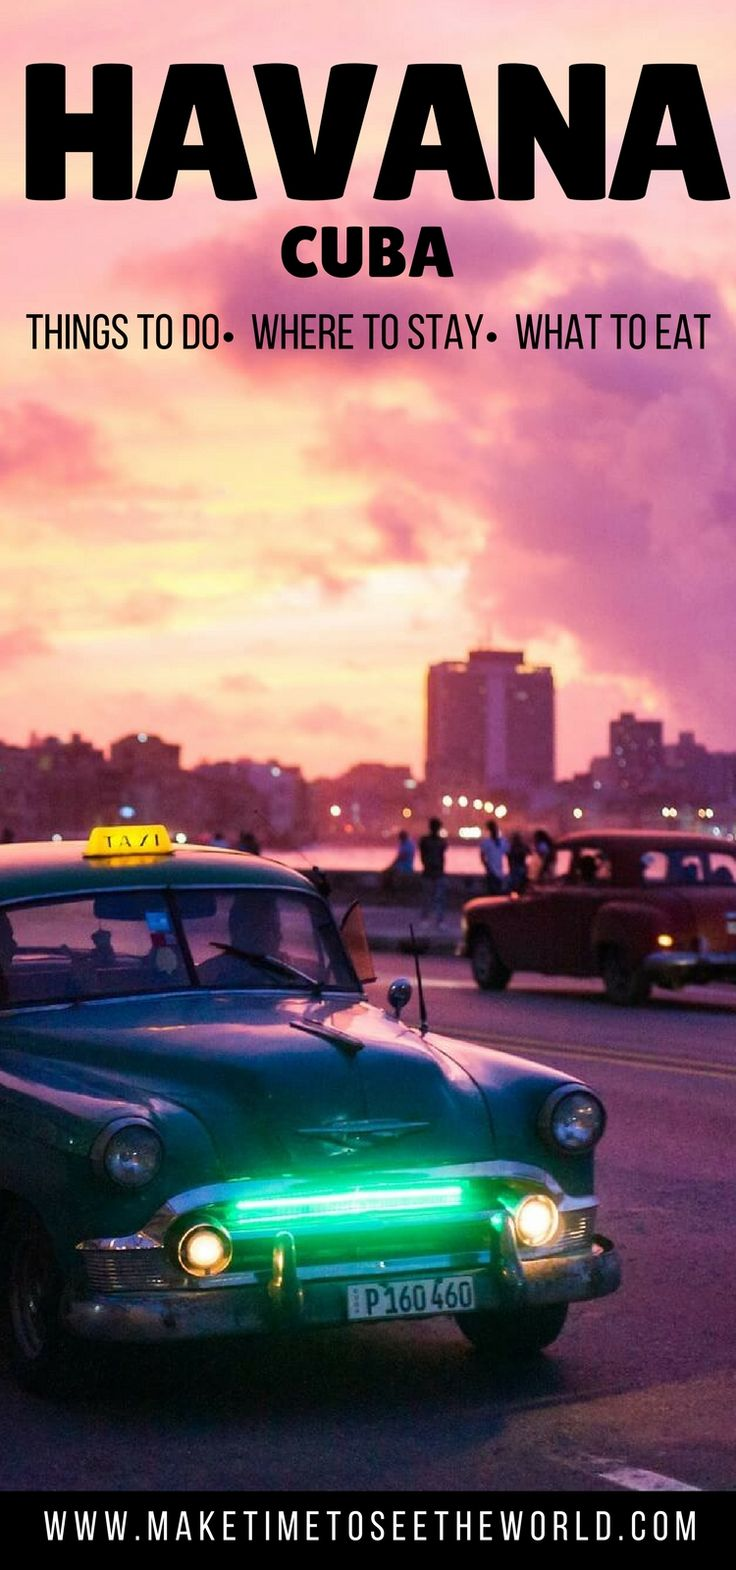 Wondering what to do in Havana? This guide has you covered with visitor info inc wifi, transport, cocktails, hotels and the Top Things To Do in Havana Cuba ******************************************************************************** Havana Cuba   Havana   Habana   Things to do in Havana   Wifi in Cuba   When to visit Cuba   What to do in Havana   Havana Cuba Points of Interest   Things to do in Havana   Things to do in Habana   Cuba Tourism